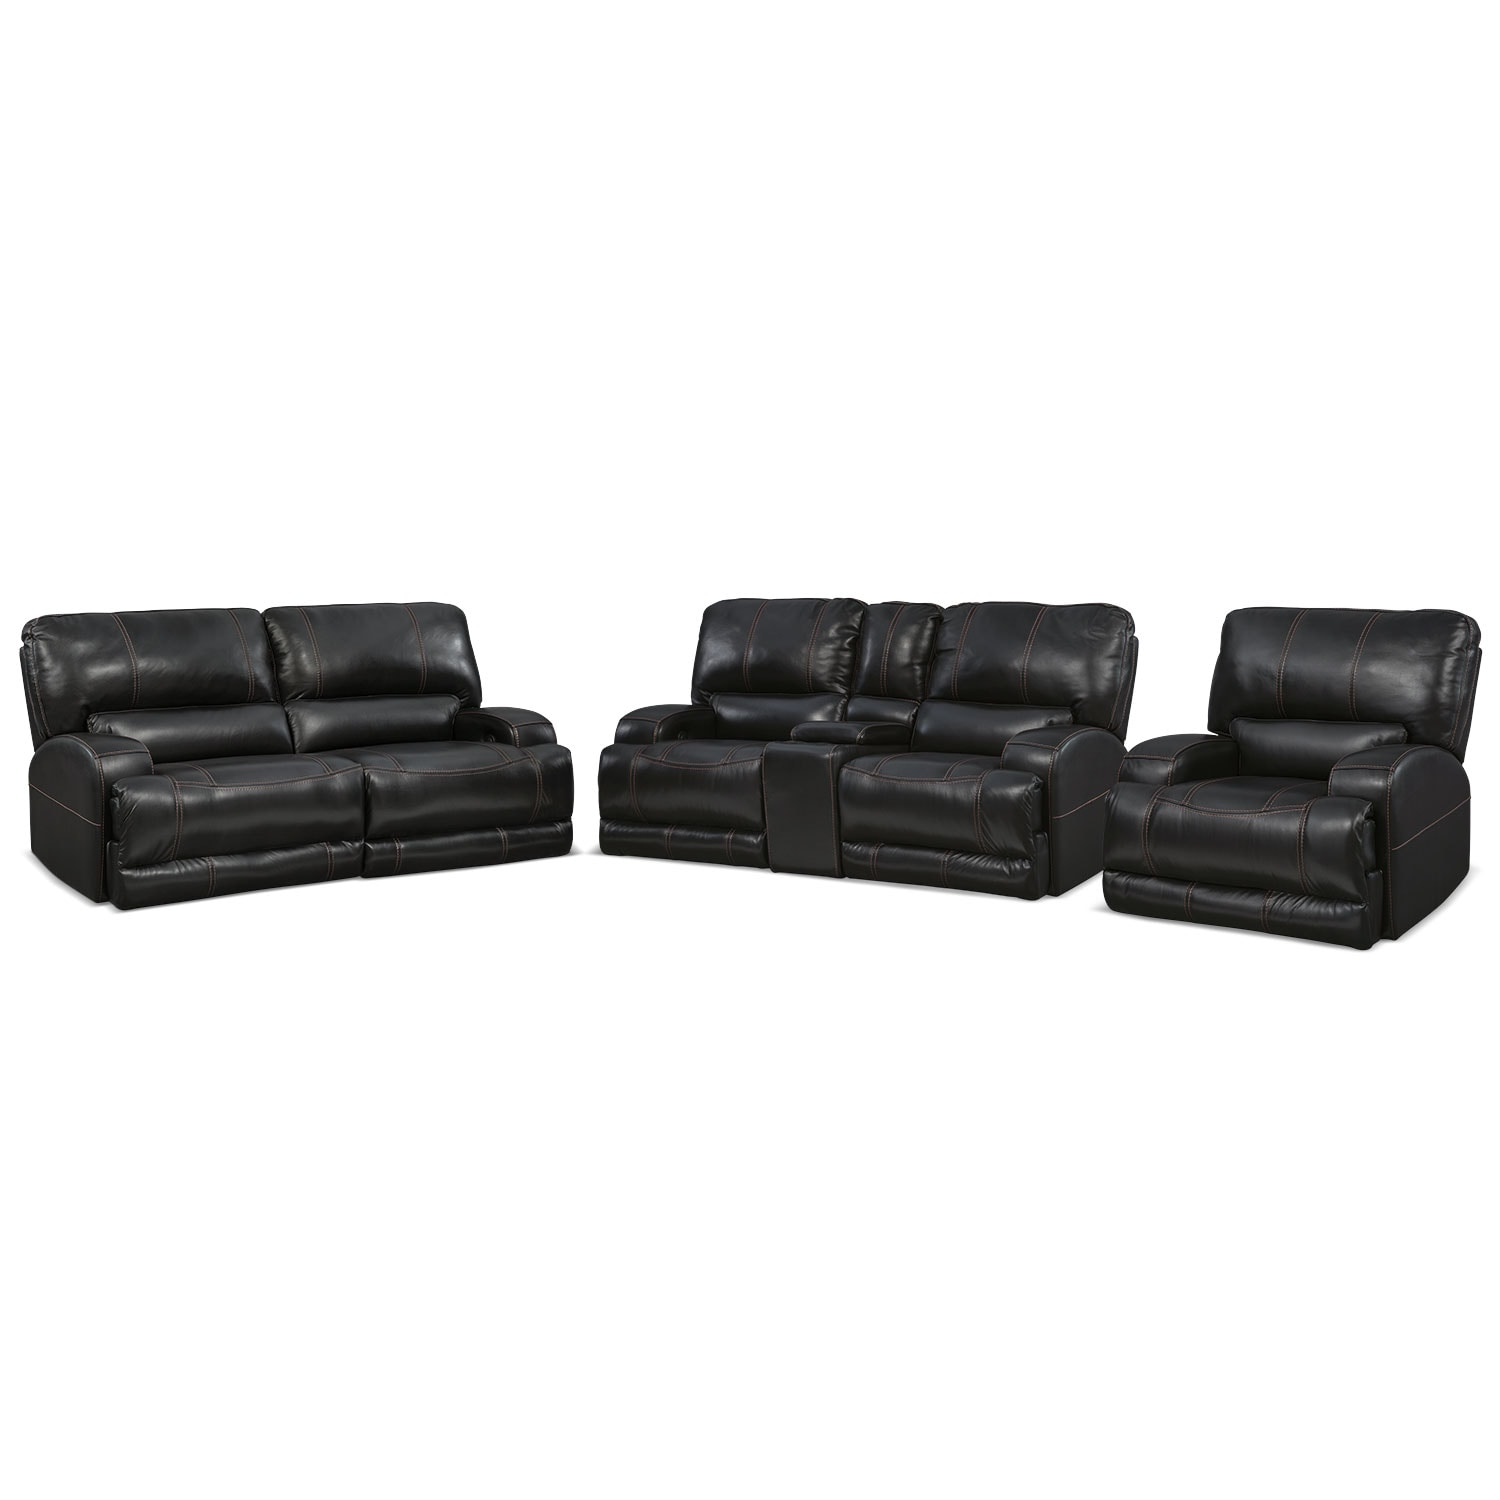 Barton Power Reclining Sofa, Reclining Loveseat and Recliner Set - Black